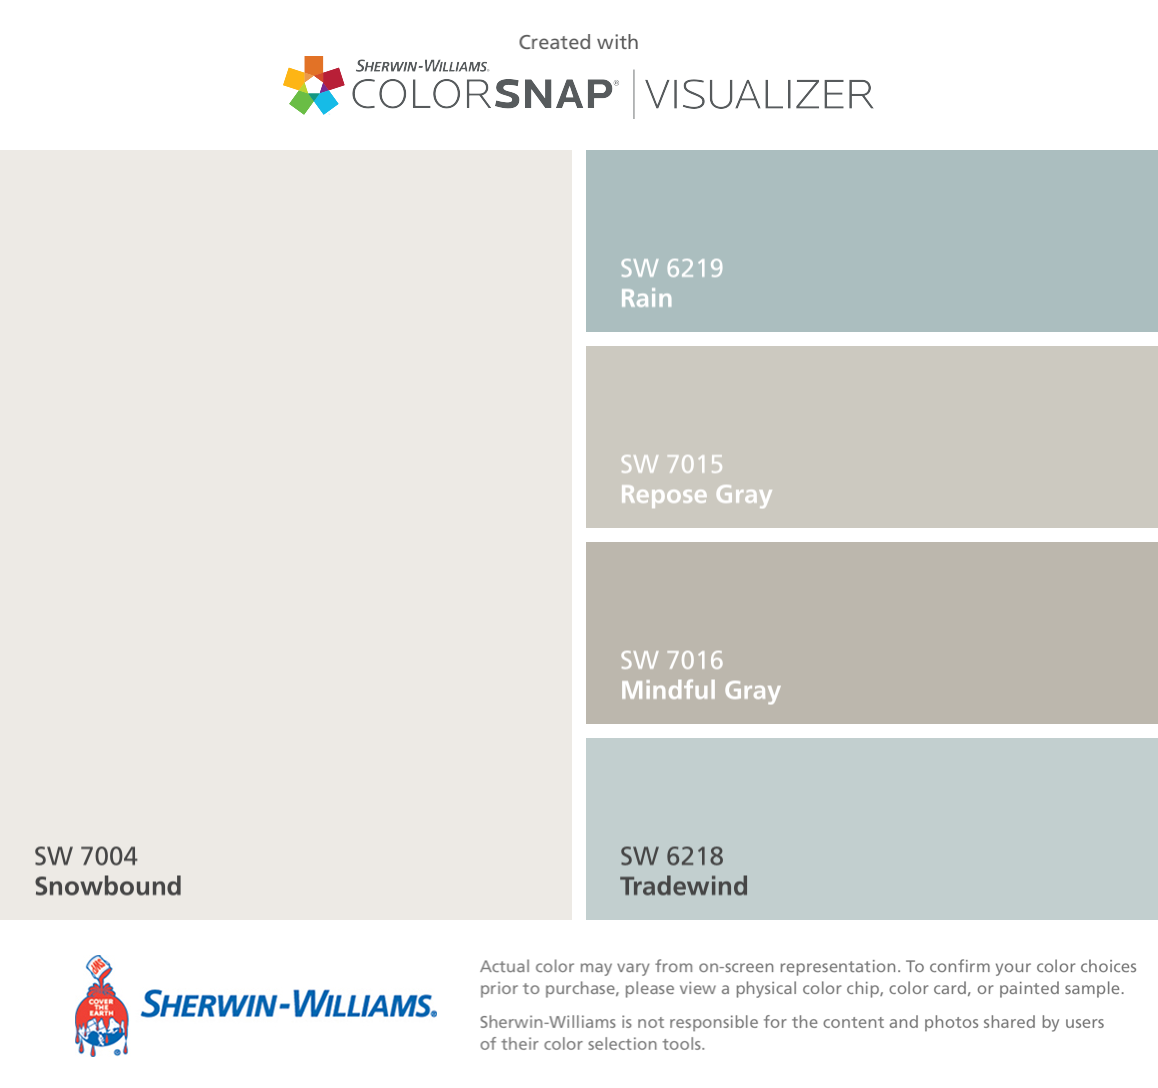 I Love These Color Combos By Sherwin Williams Snowbound Sw 7004 Rain Sw 6219 Repose Gray